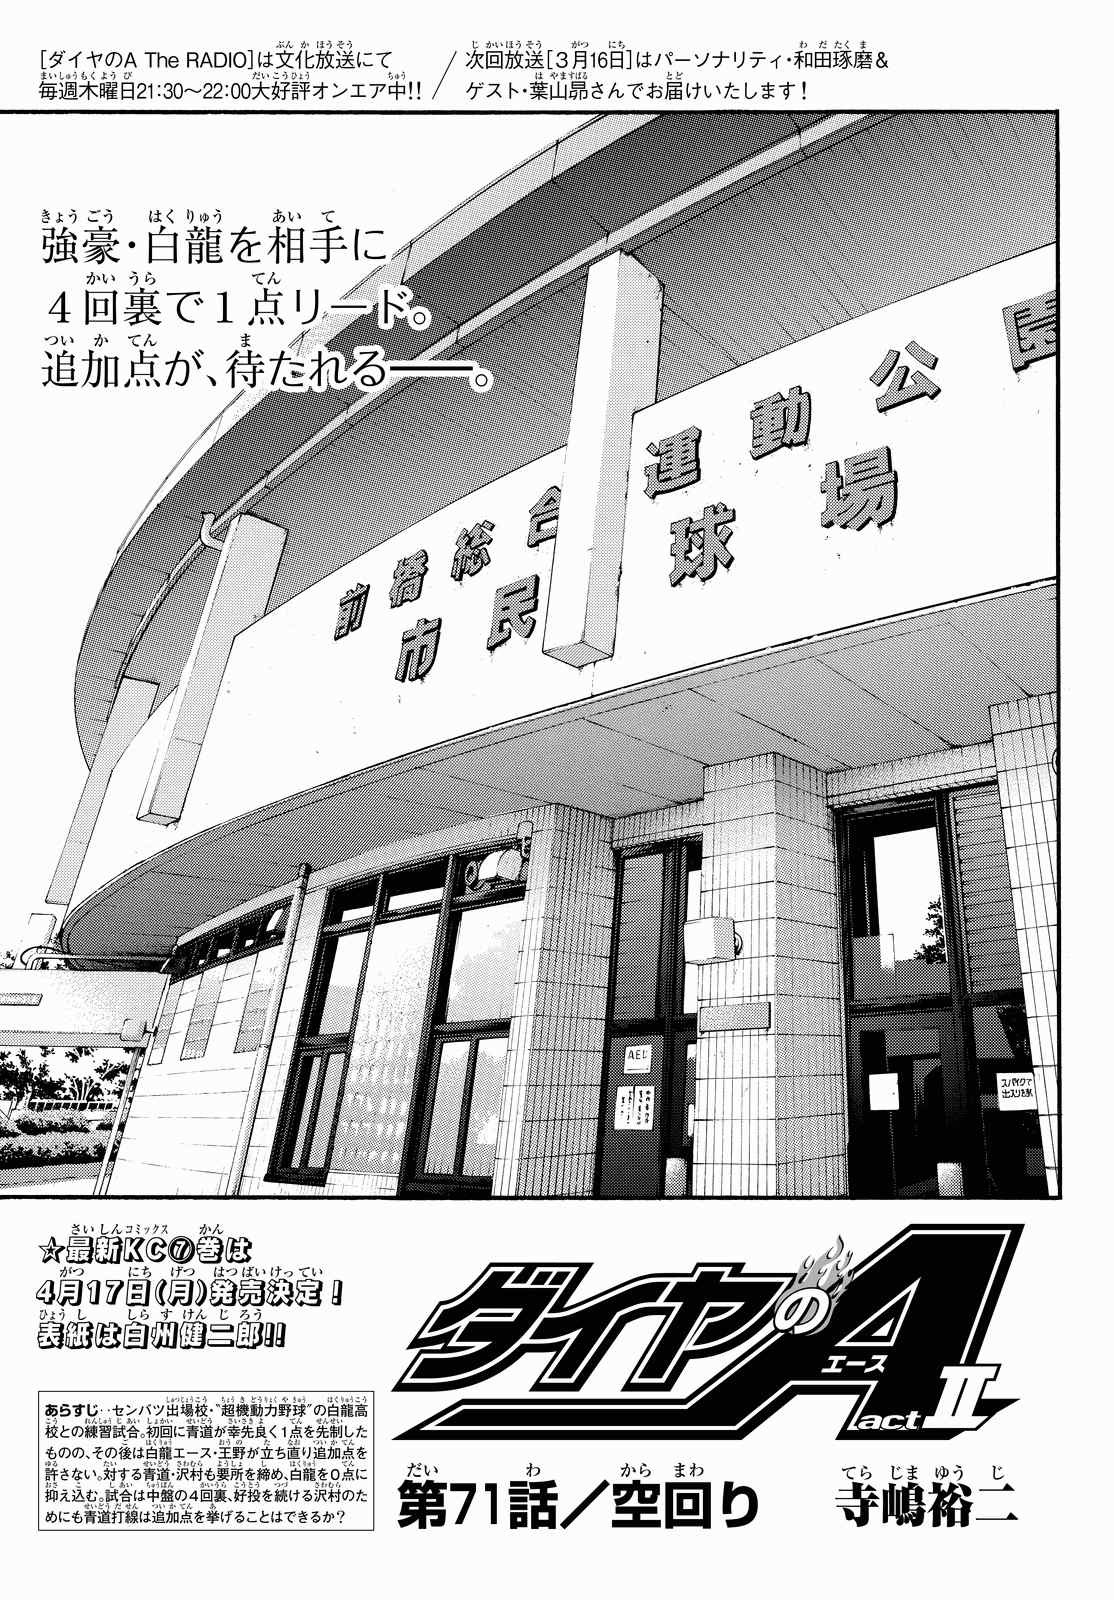 Sen Manga,Ace-of-Diamond-Act-II 071 raw,Loading Ace-of-Diamond-Act-II | Chapter  071 | Page 1 .....